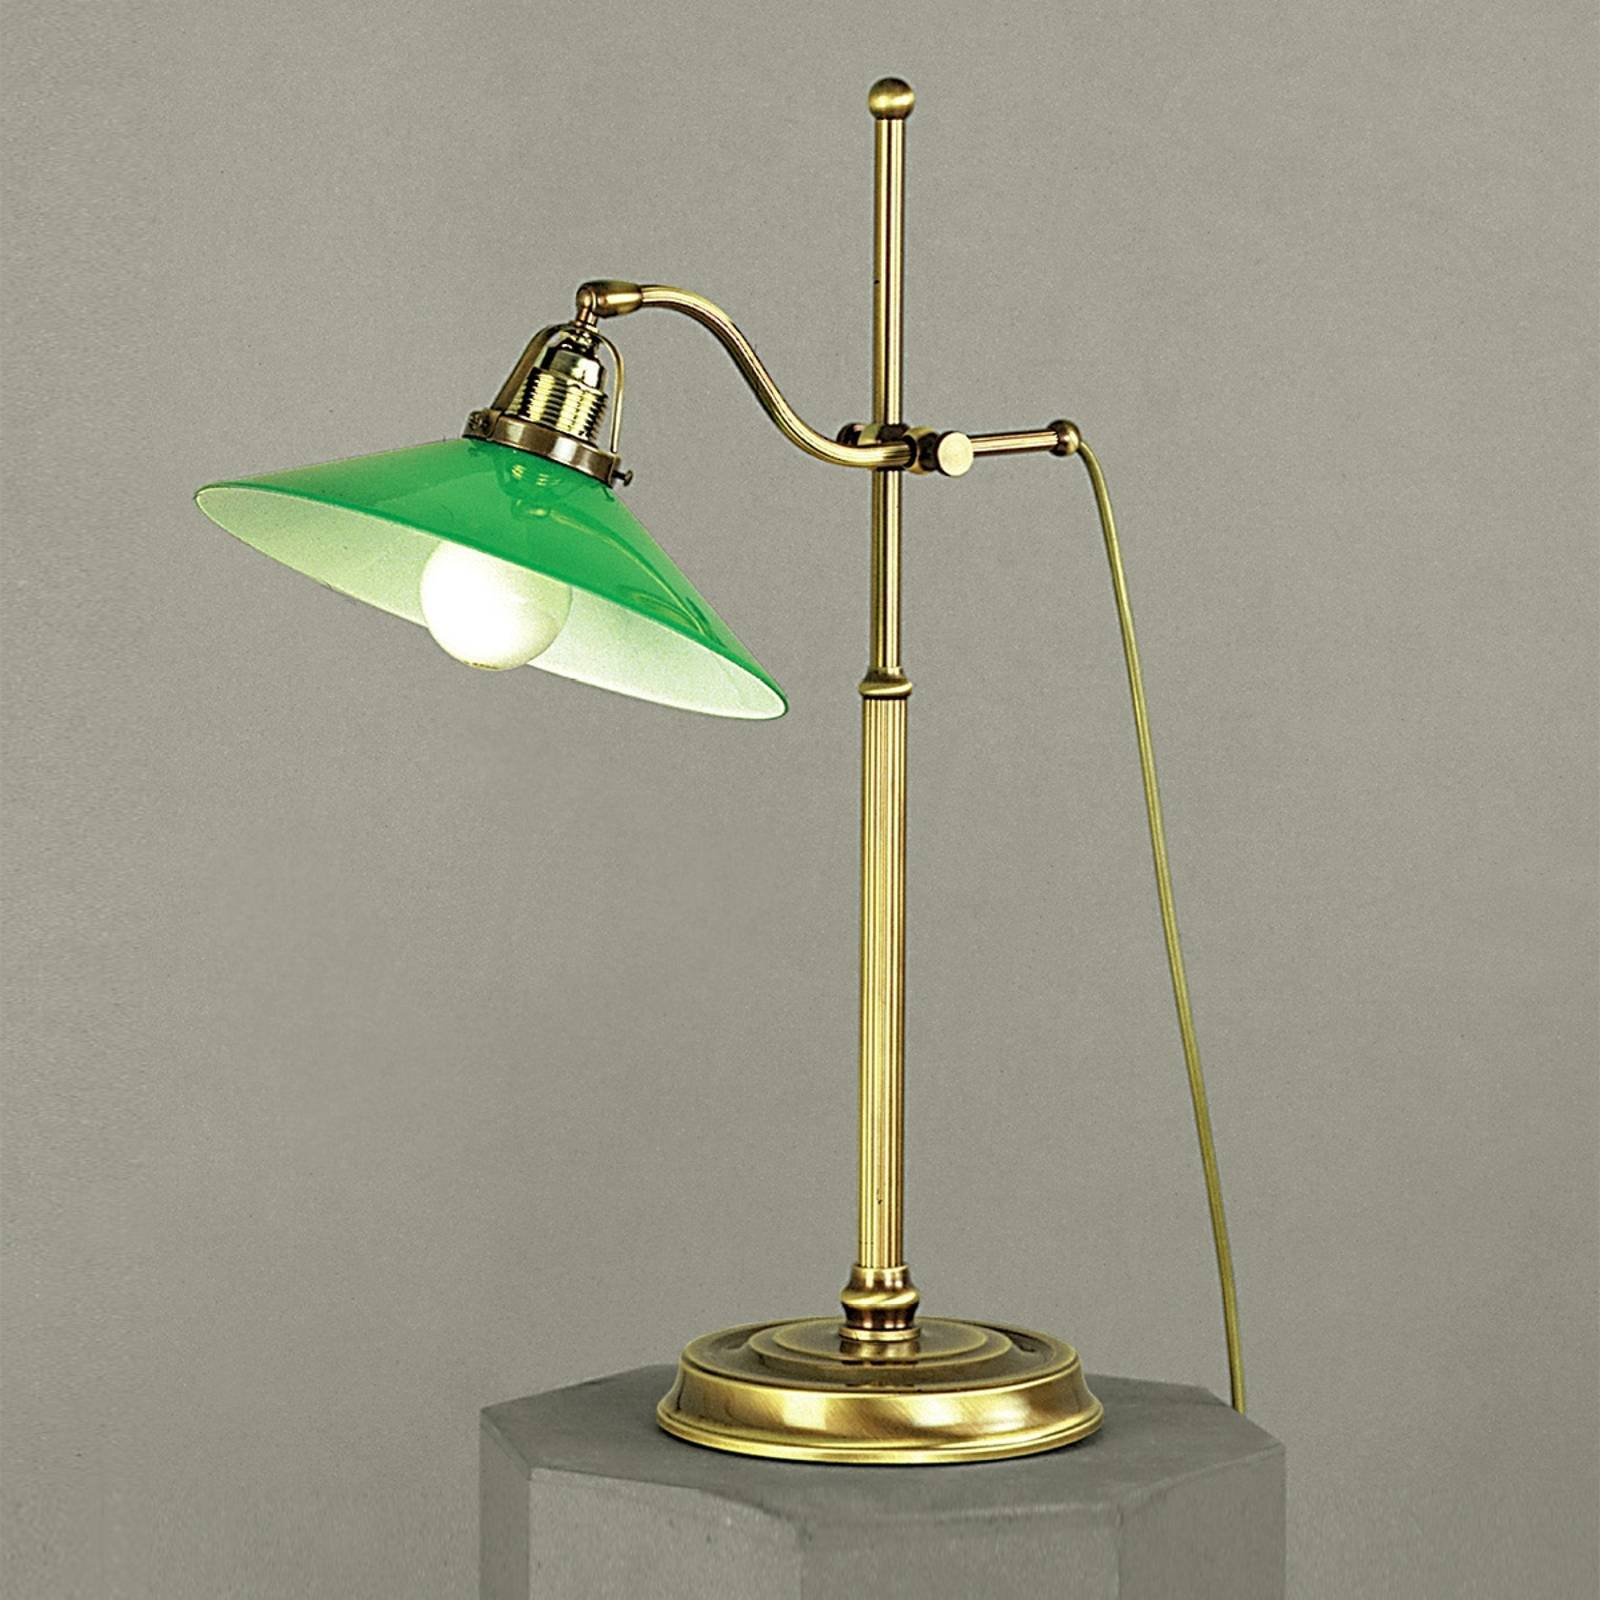 Verdina Table Light in Patina Look Green from Orion